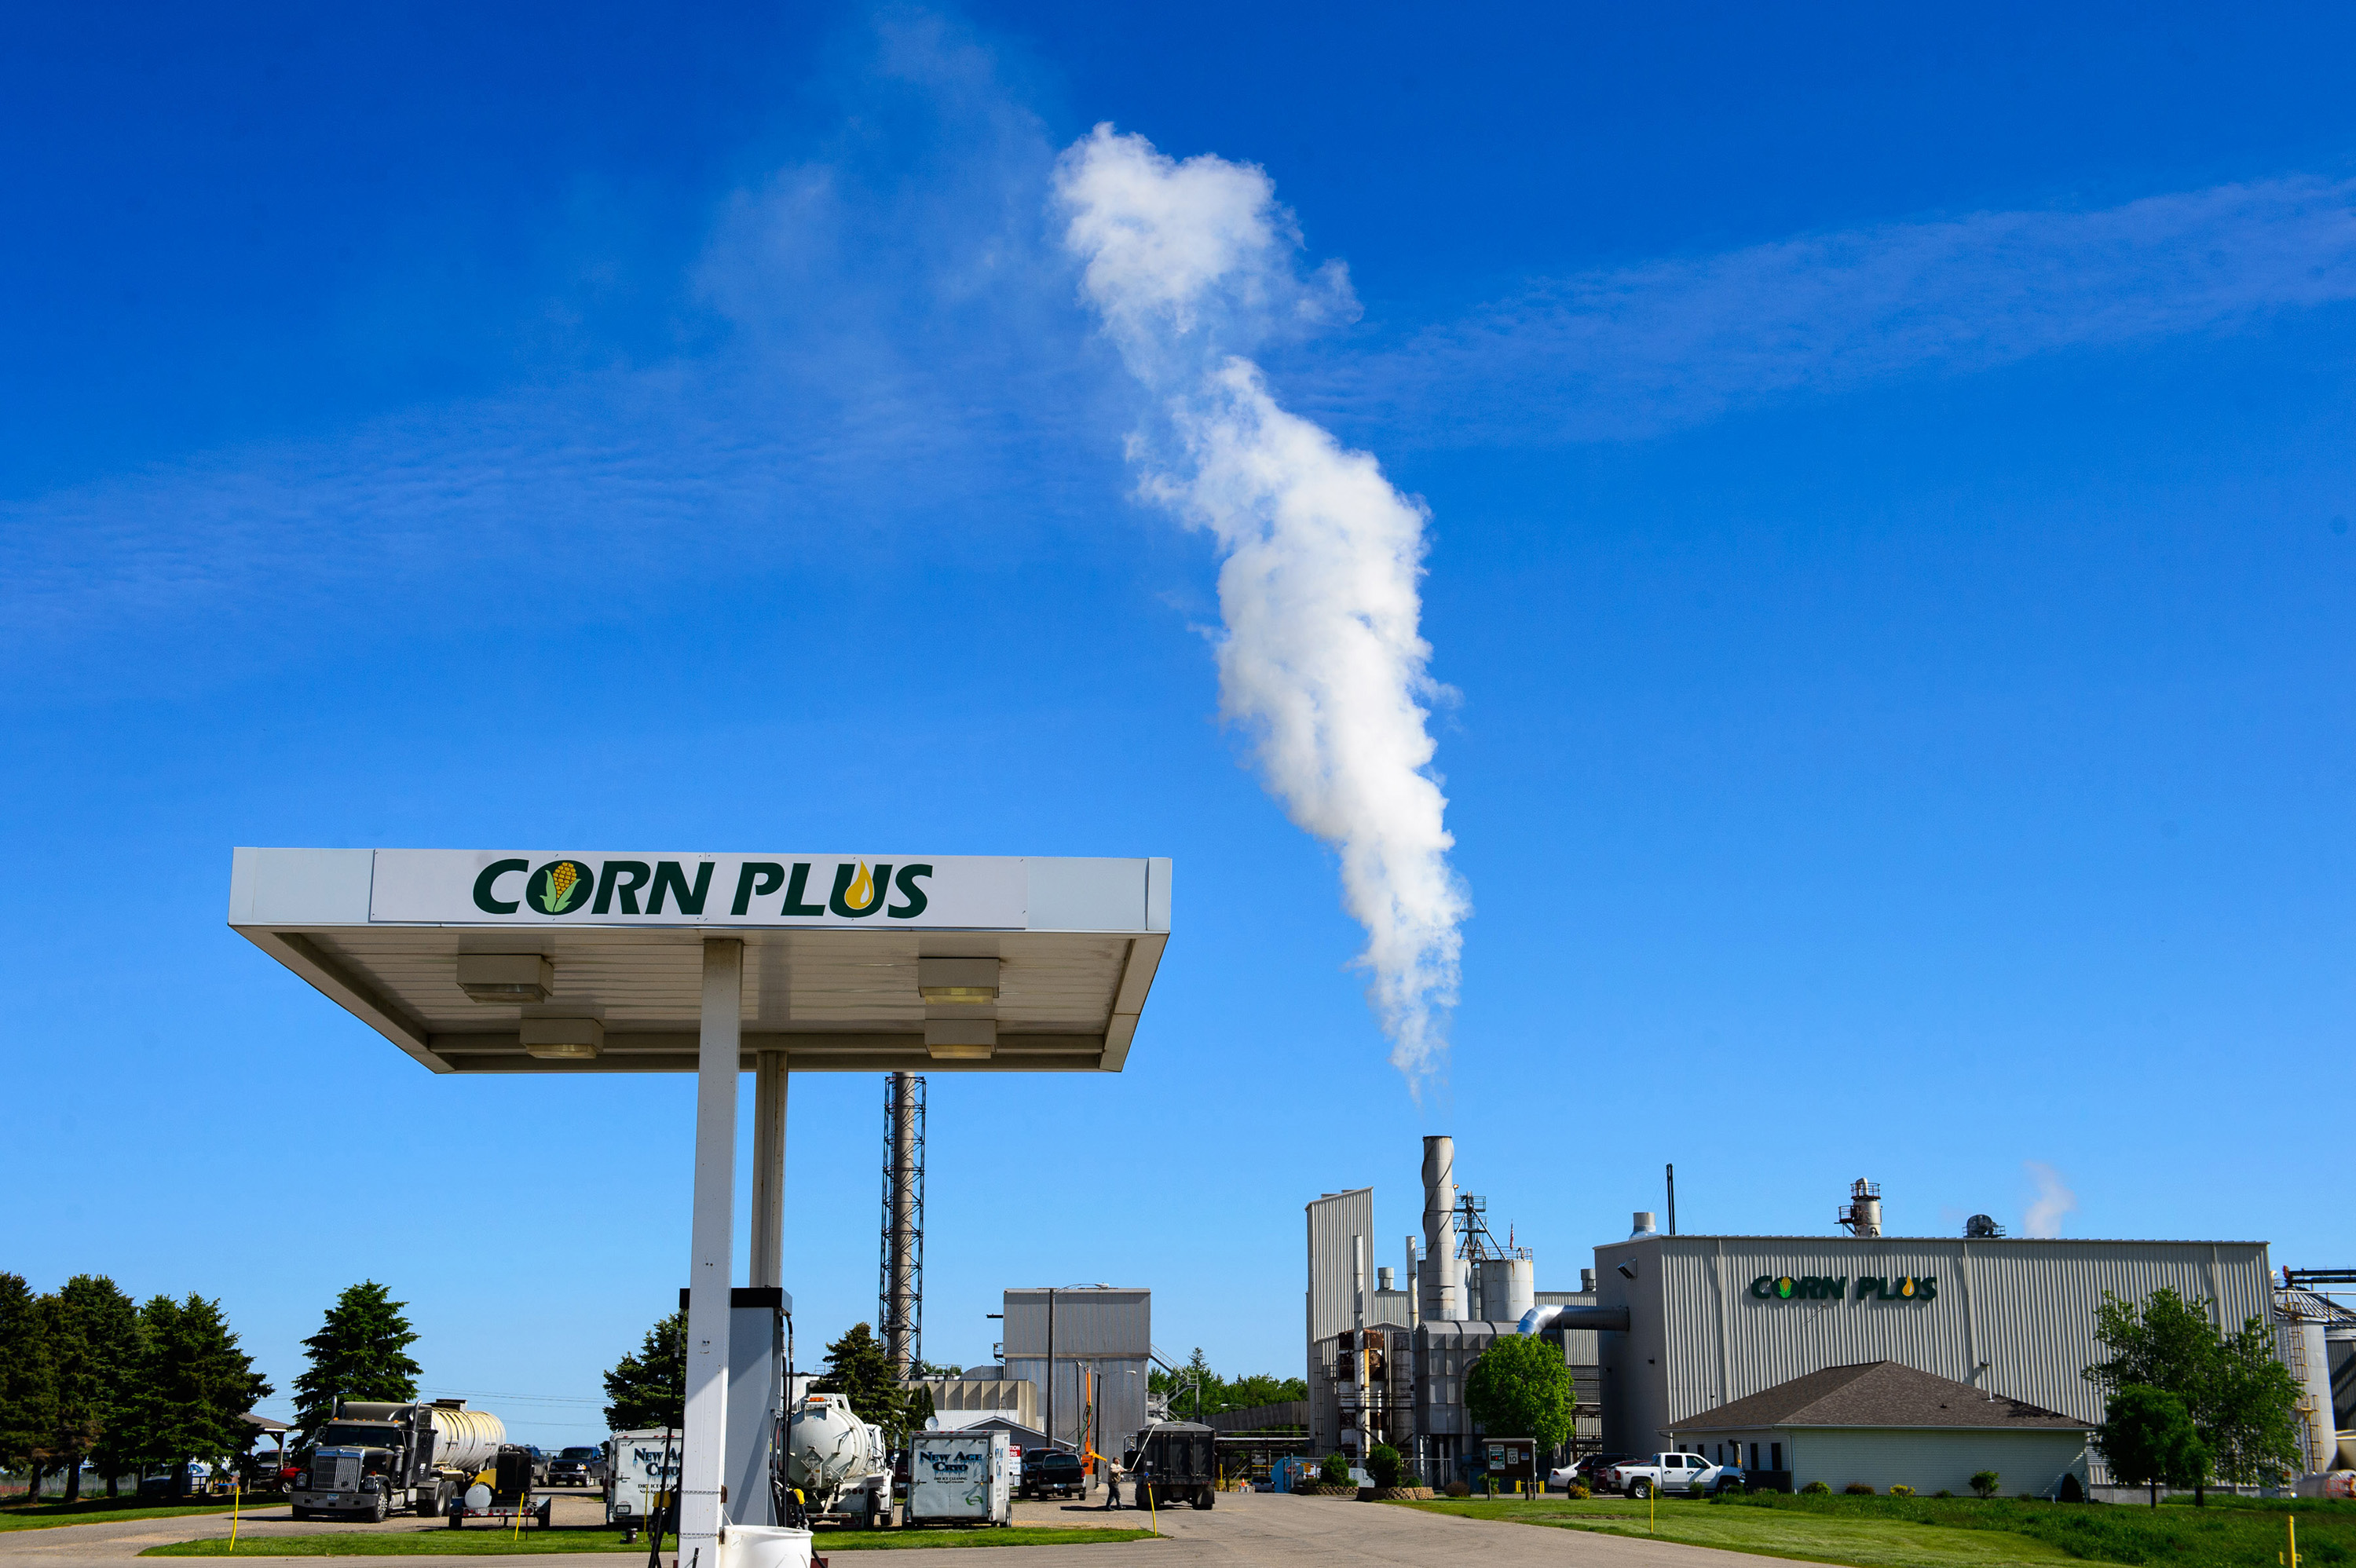 With Sonny Perdue nominated, an ethanol argument jumps up